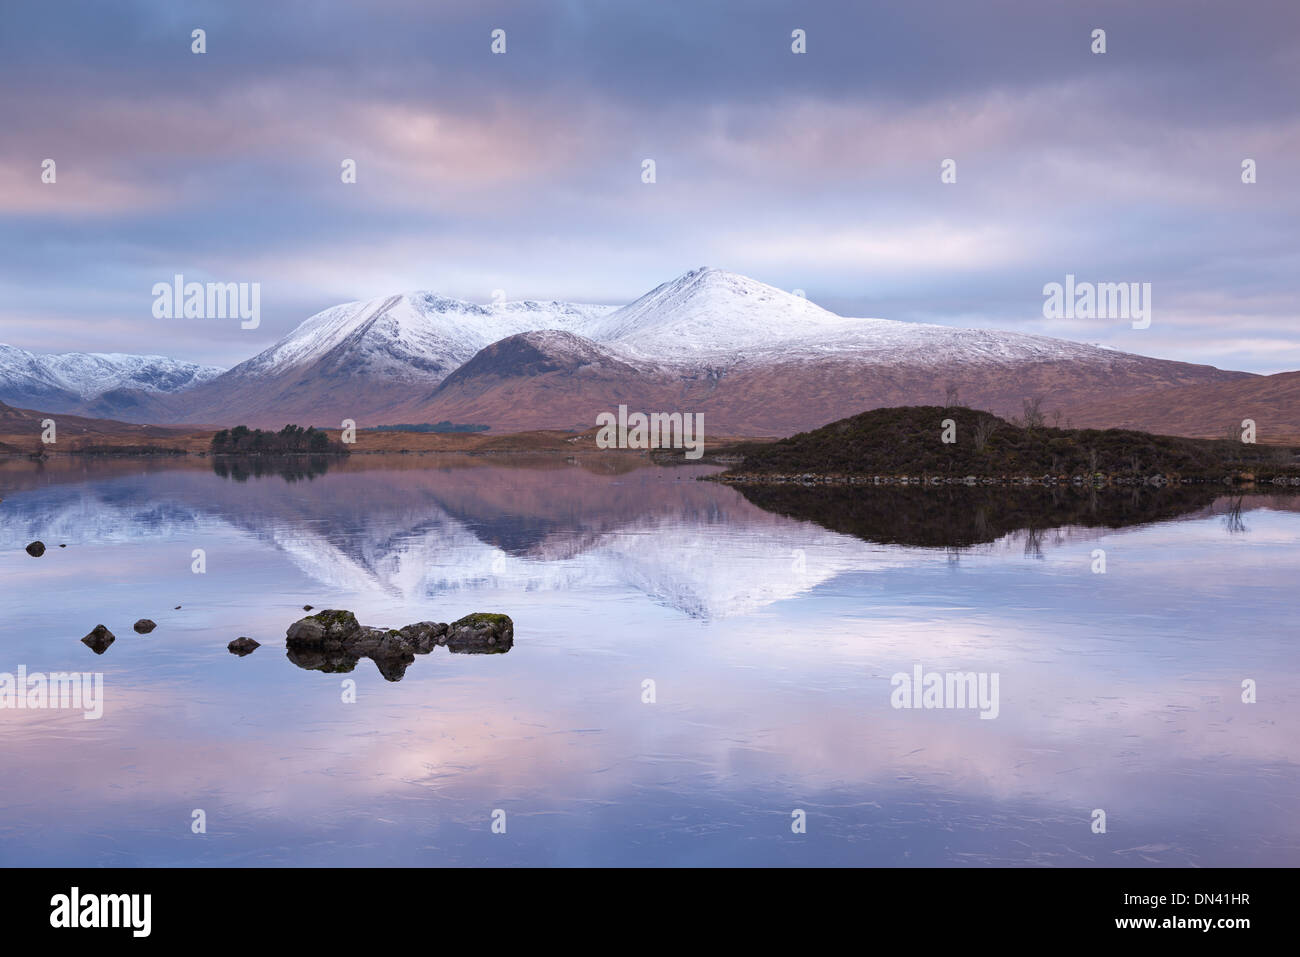 Snow Covered Black Mount reflected in a lochan, Rannoch Moor, Highland, Scotland. Winter (November) 2013. - Stock Image